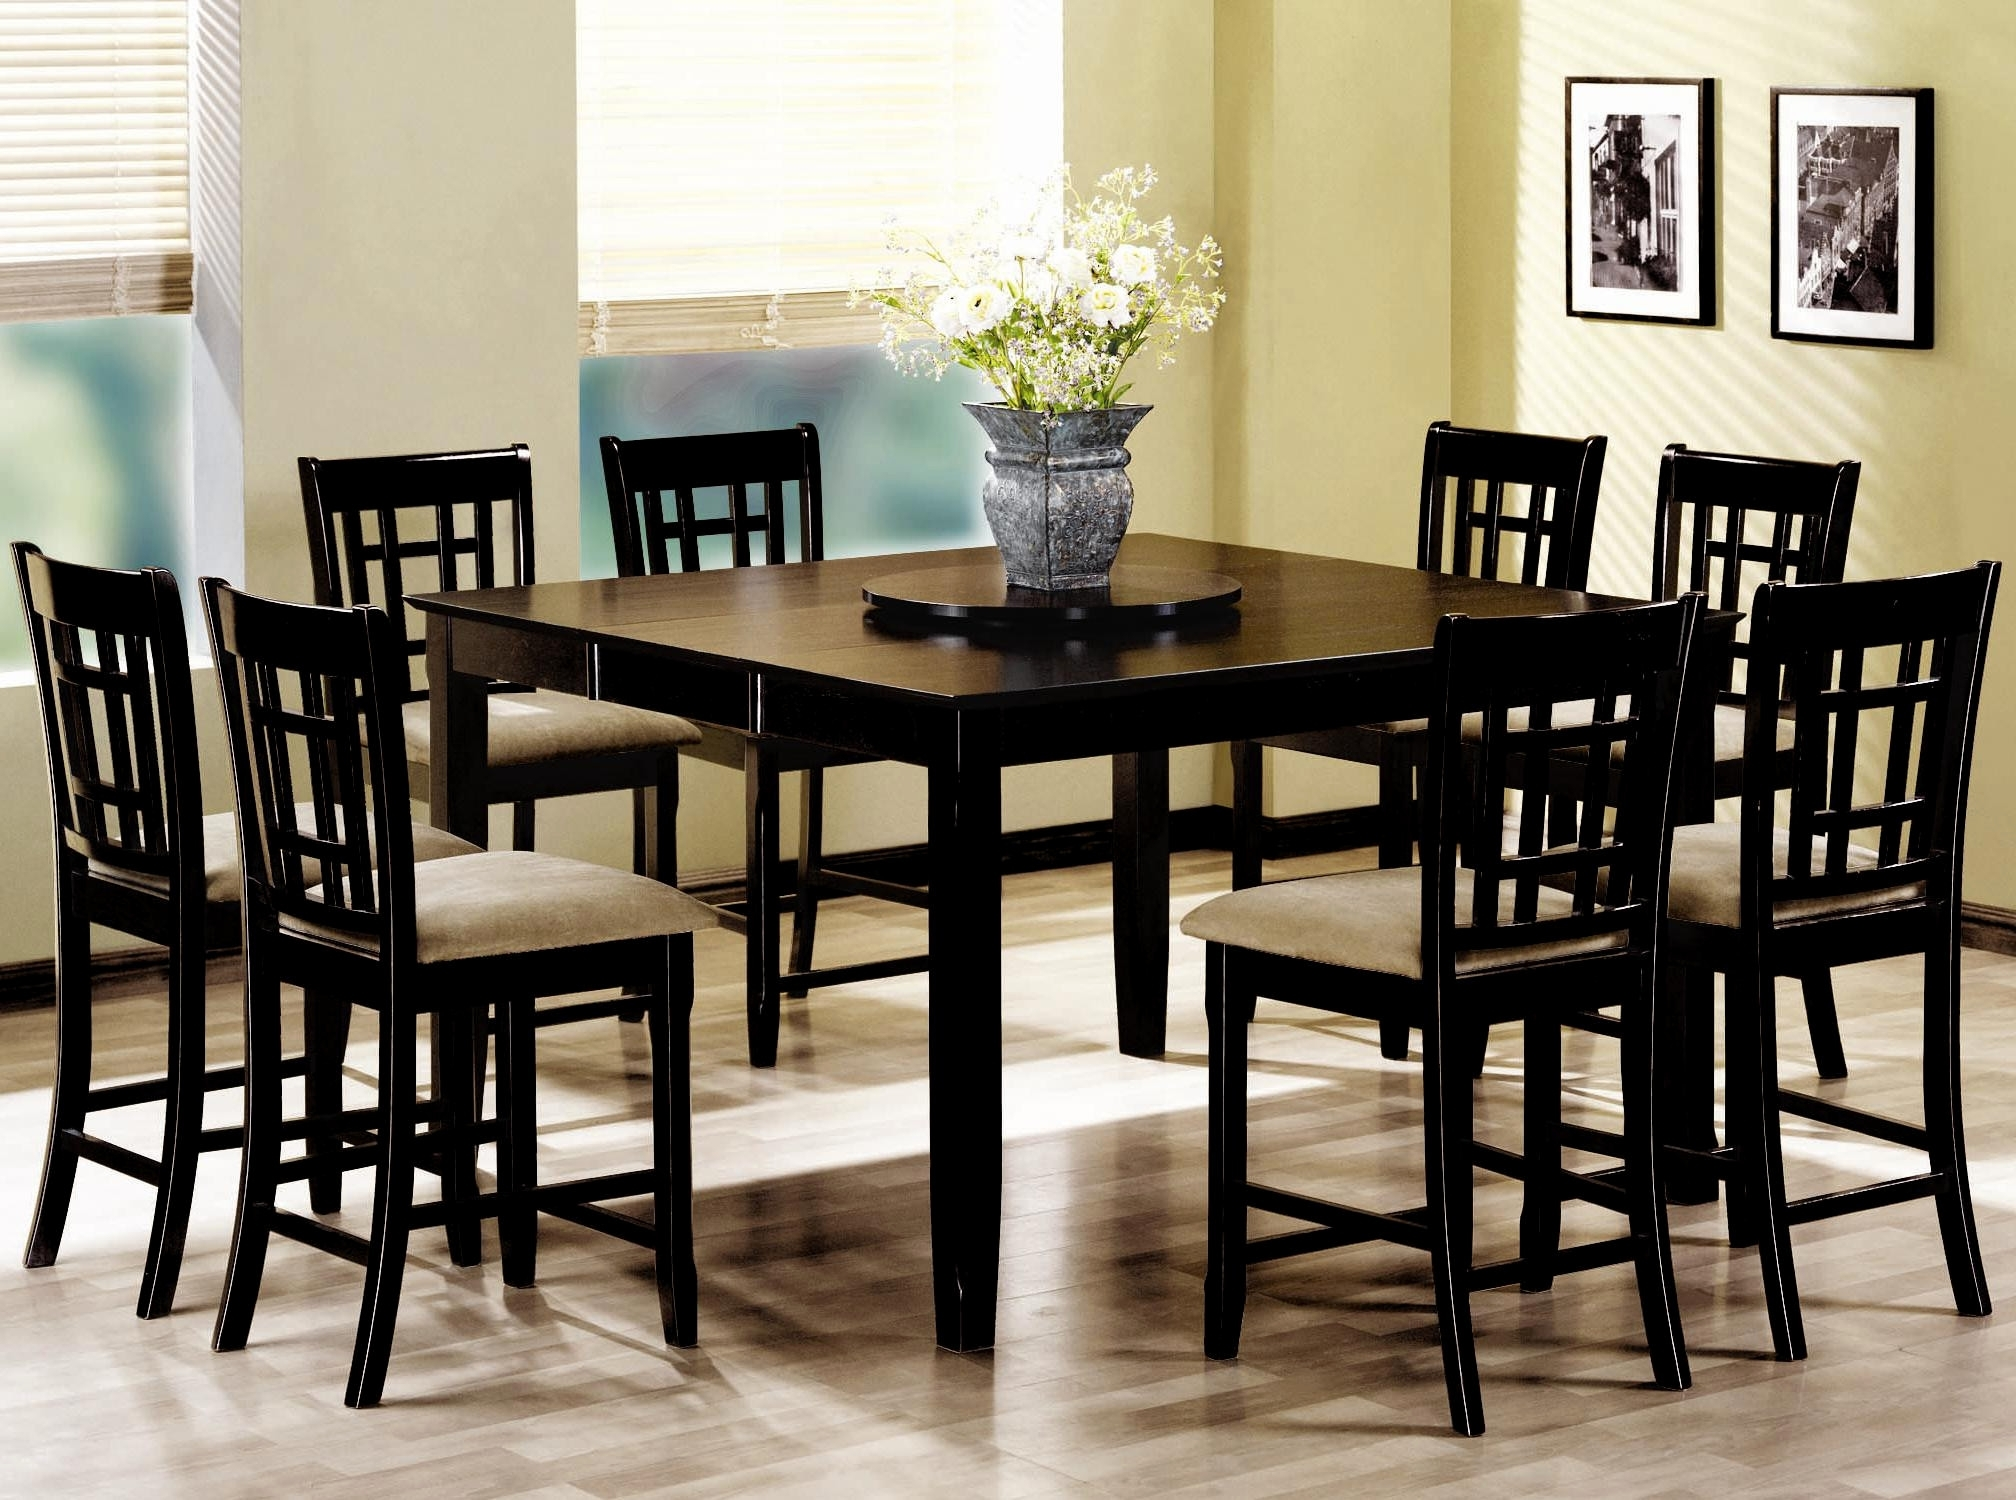 Dining Tables Set For 8 In Fashionable Luxury Round Dining Room Tables Sets For 8 – Round Dining Set For 8 (Gallery 13 of 25)